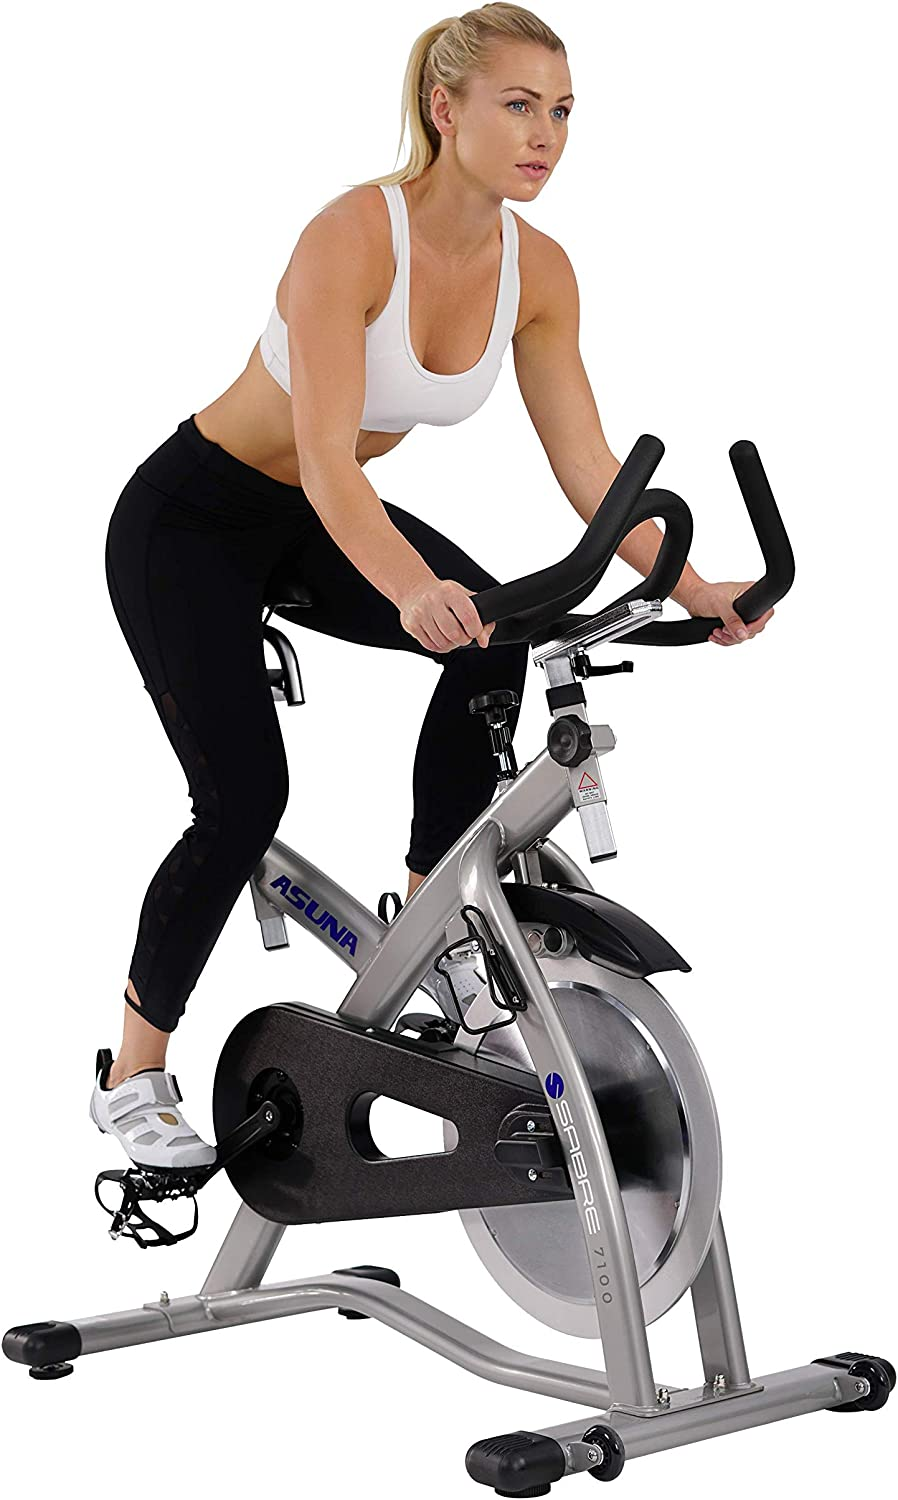 ASUNA 7100 Sabre Cycle Exercise Bike – Magnetic Belt Drive Commercial Indoor Cycling Bike with SPD Style Cage Pedals, 285 LB Max Weight and Low Q-Factor